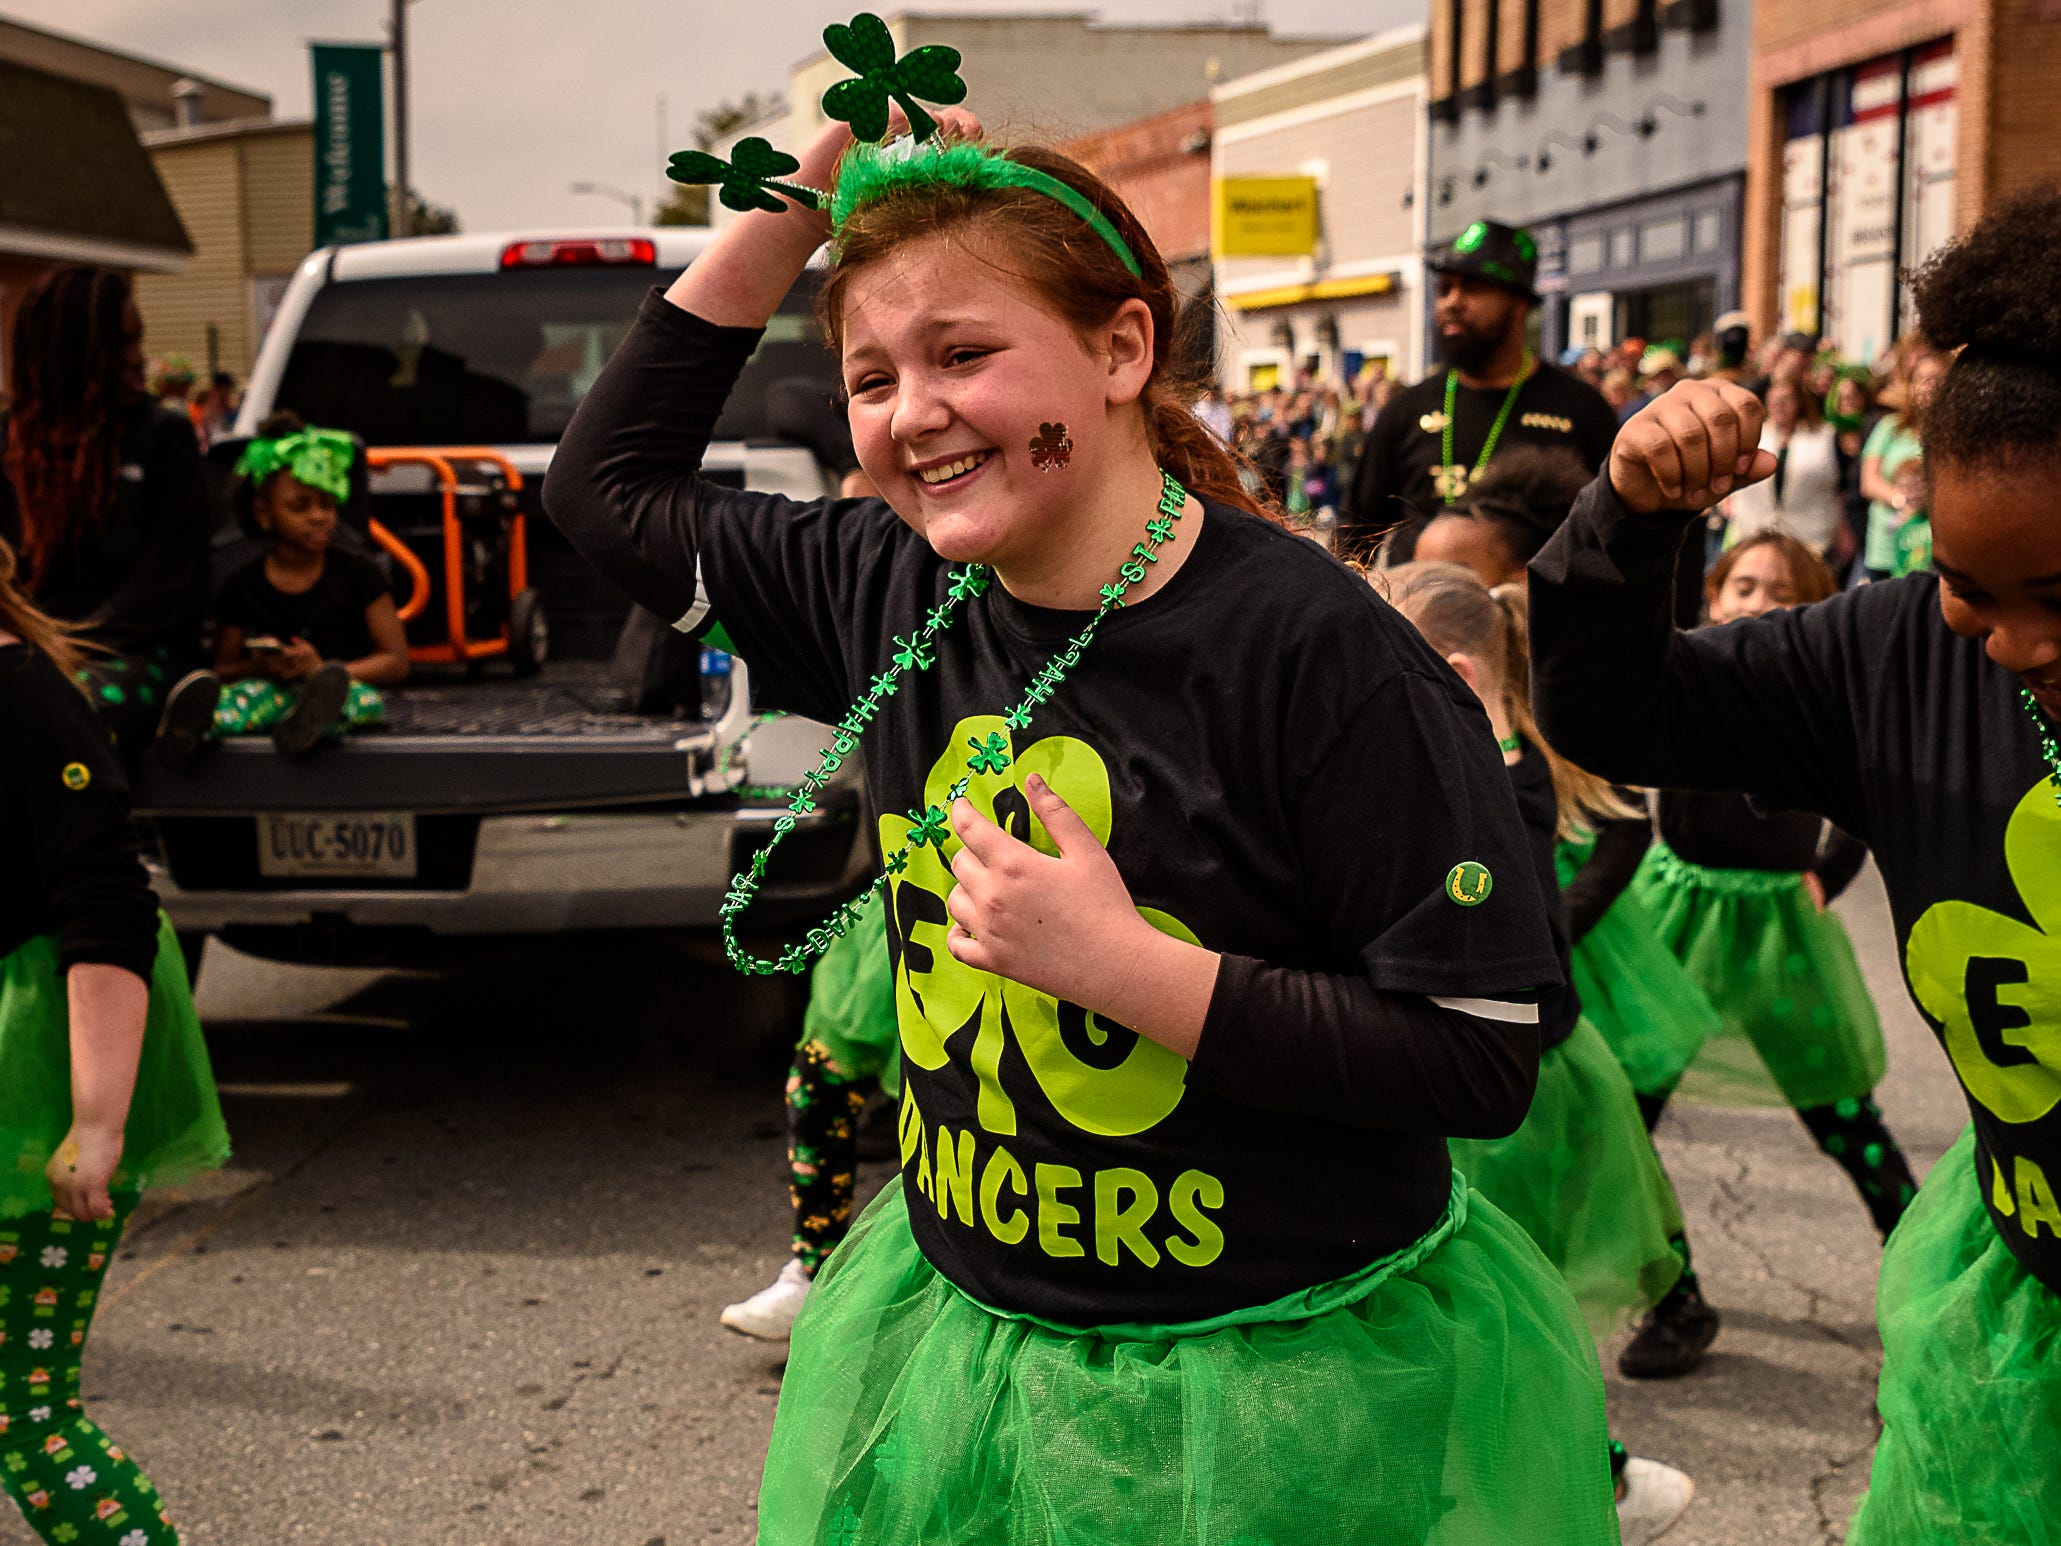 A member of the ESG Dancers performs for the judges and the crowd at Onancock's St. Patrick's parade on Sunday, March 10.